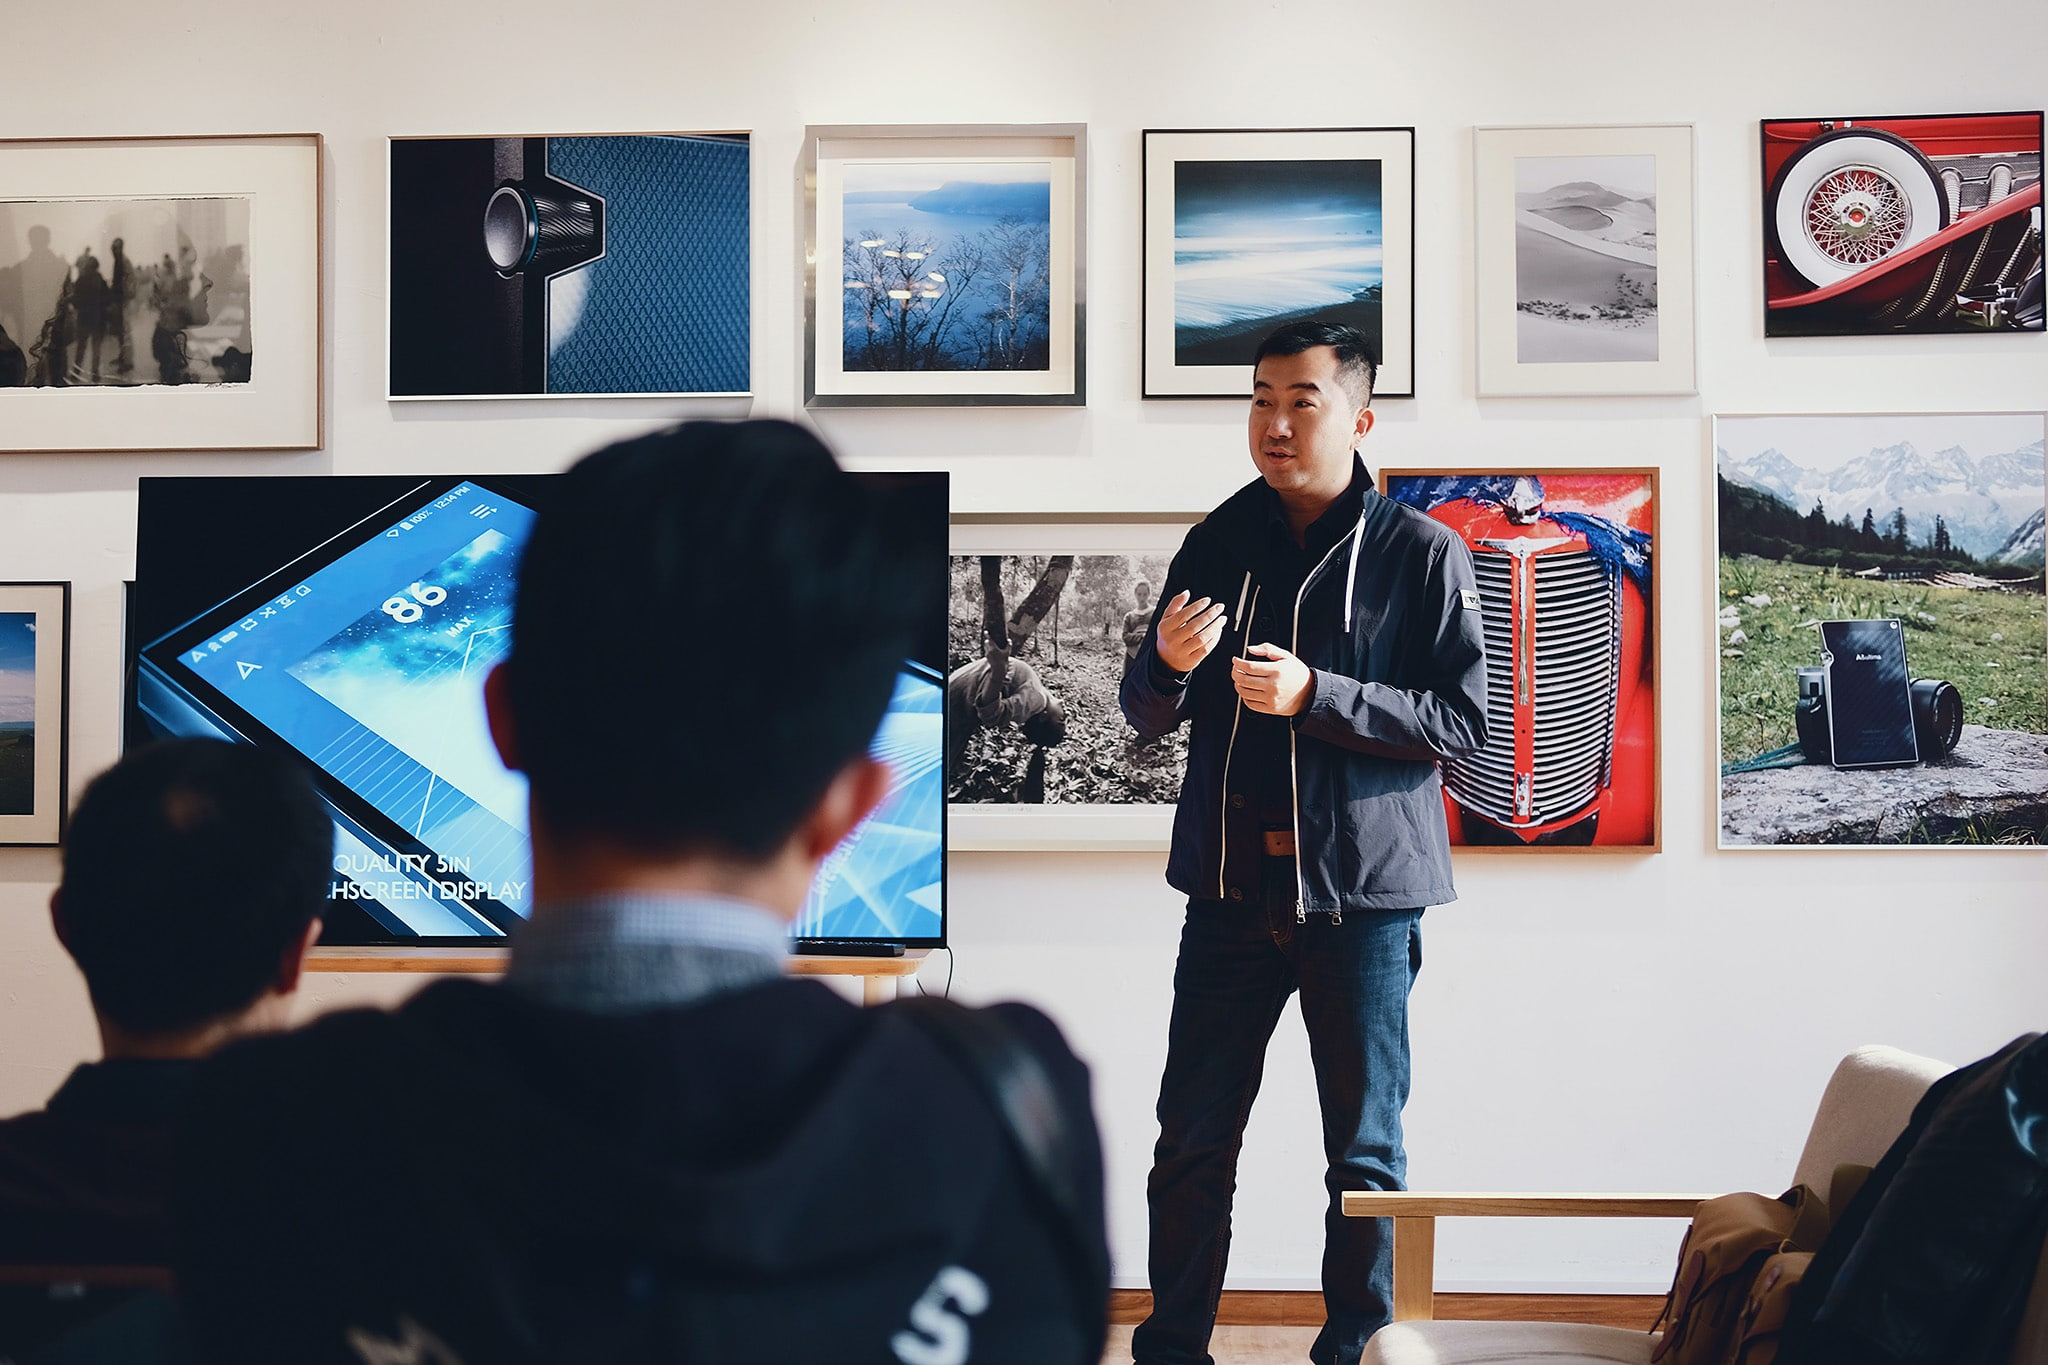 A seminar of students in a photography class with blurred backs of students in the foreground and an Asian lecturer at the front of the room standing in front of framed photographs, establishing restorative justice principles in his class